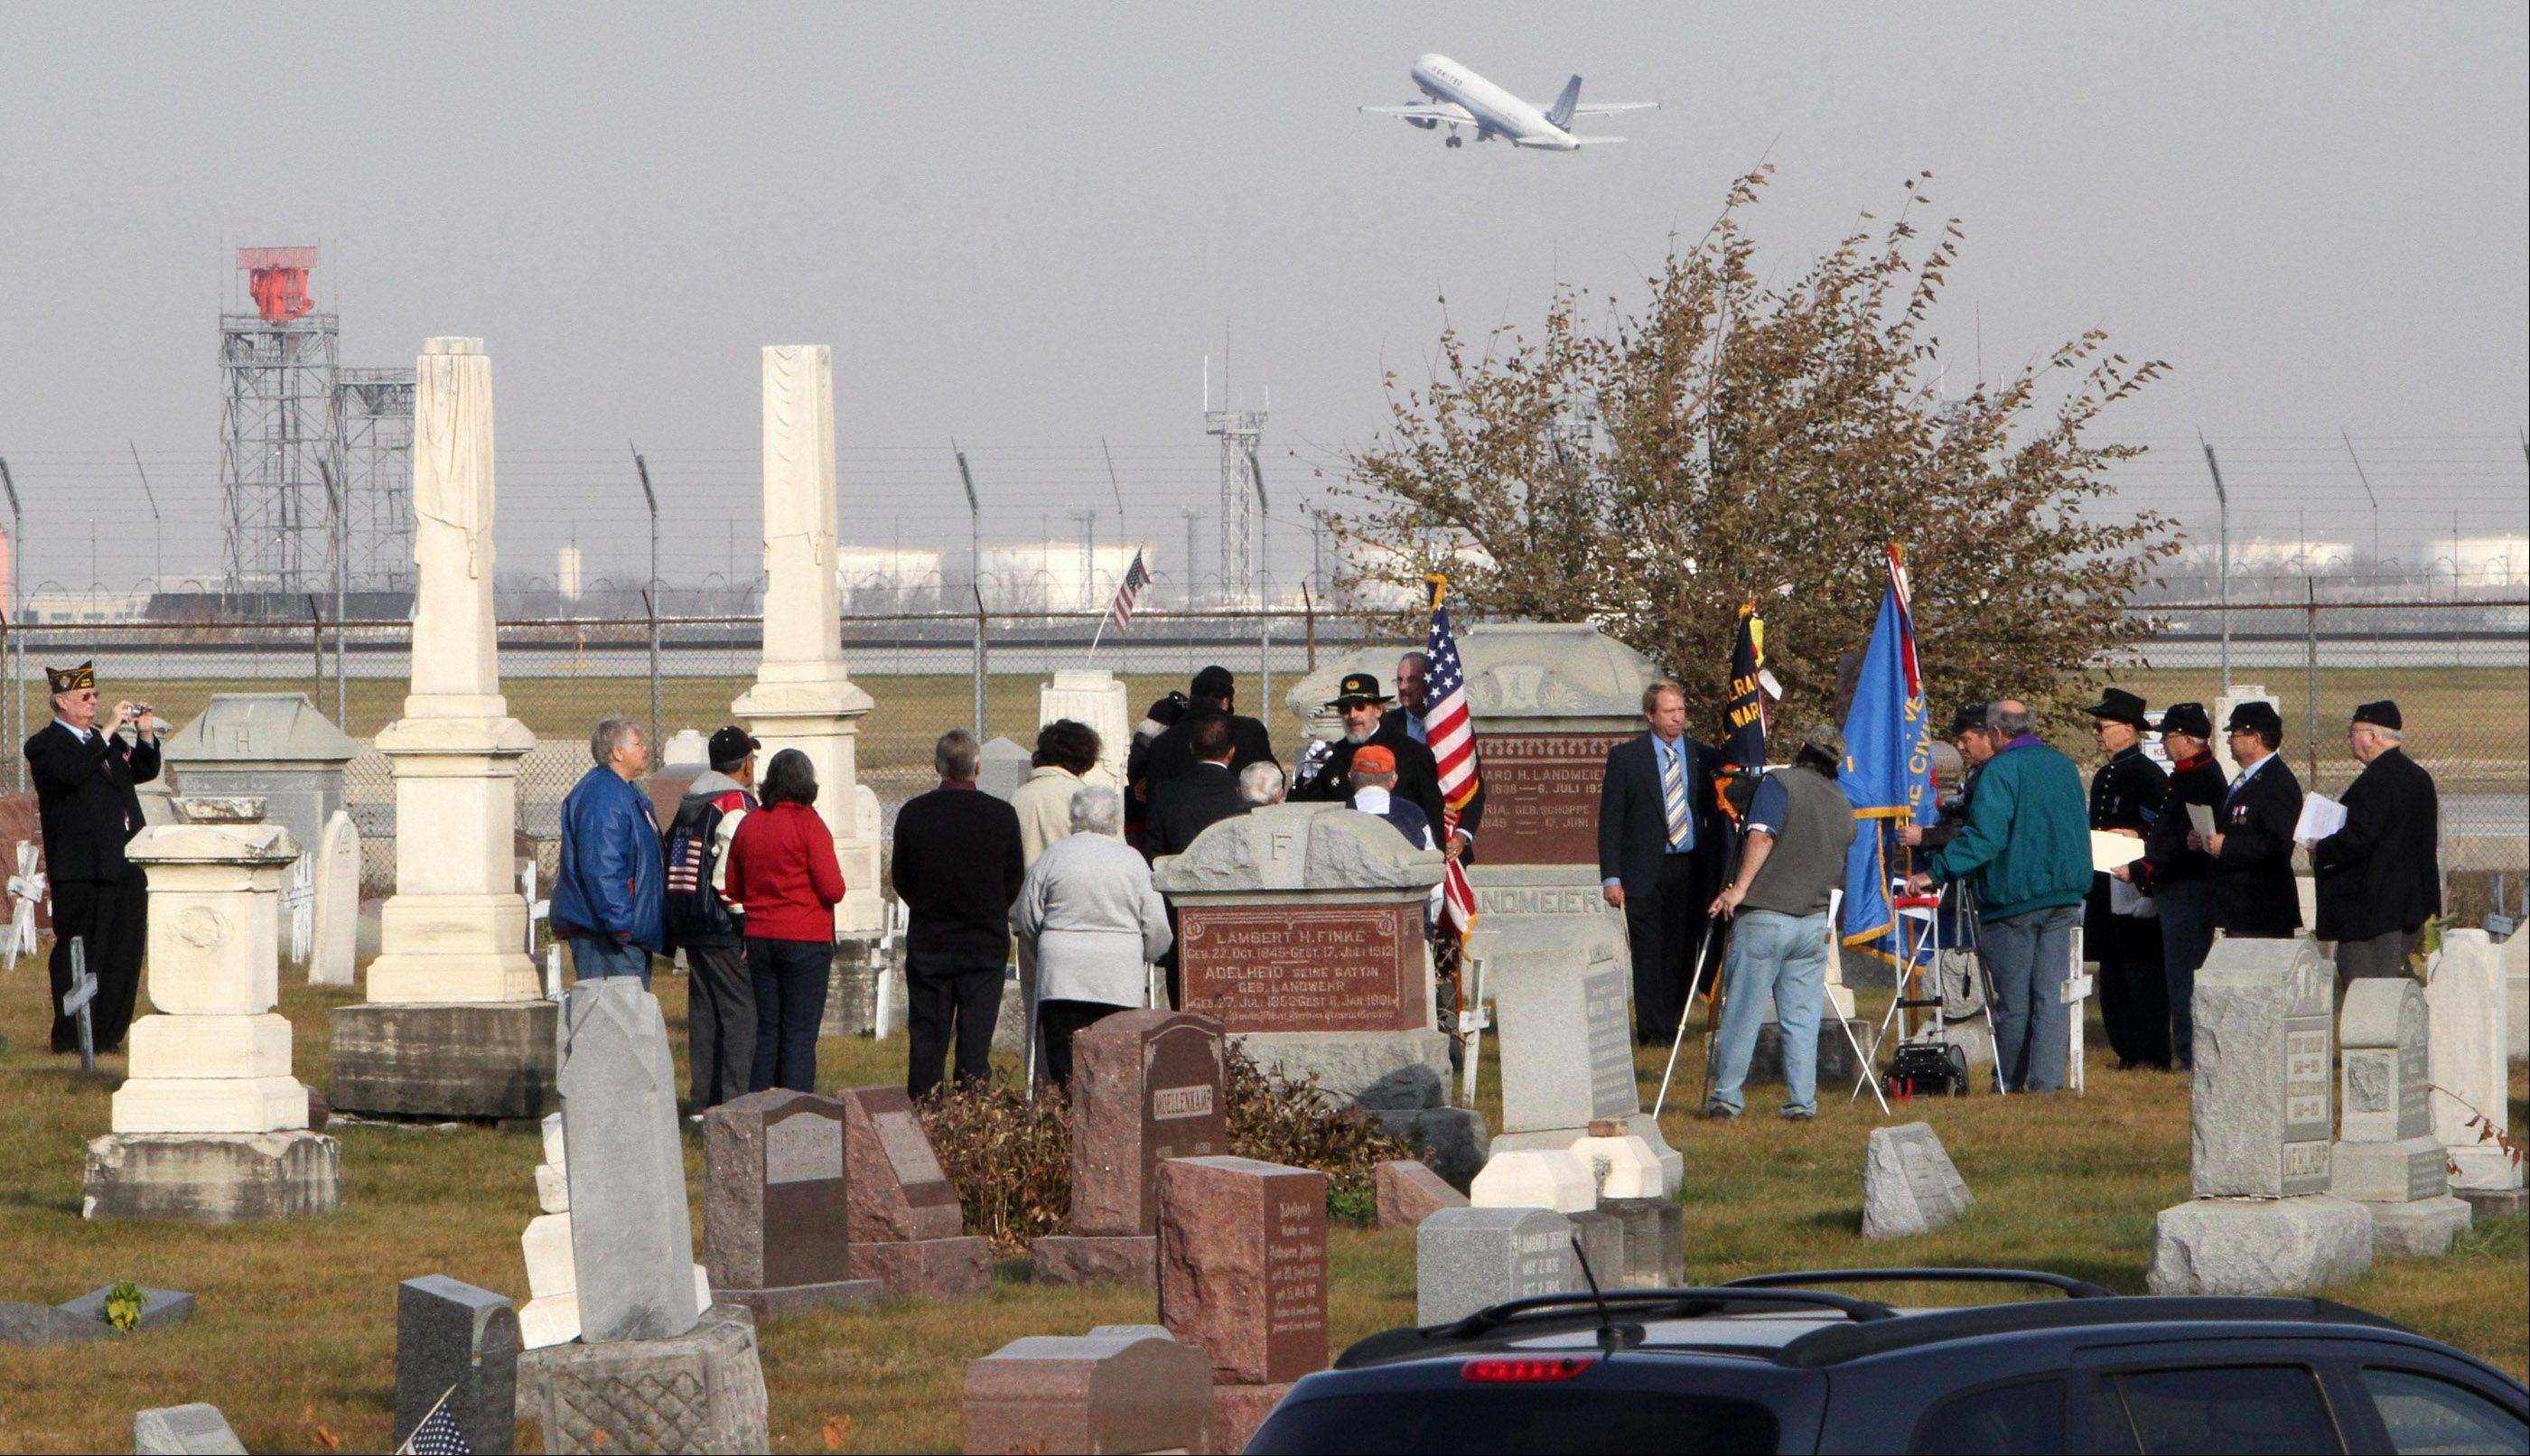 The site of O'Hare International Airport's newest runway was once the historical St. Johannes Cemetery in Bensenville.